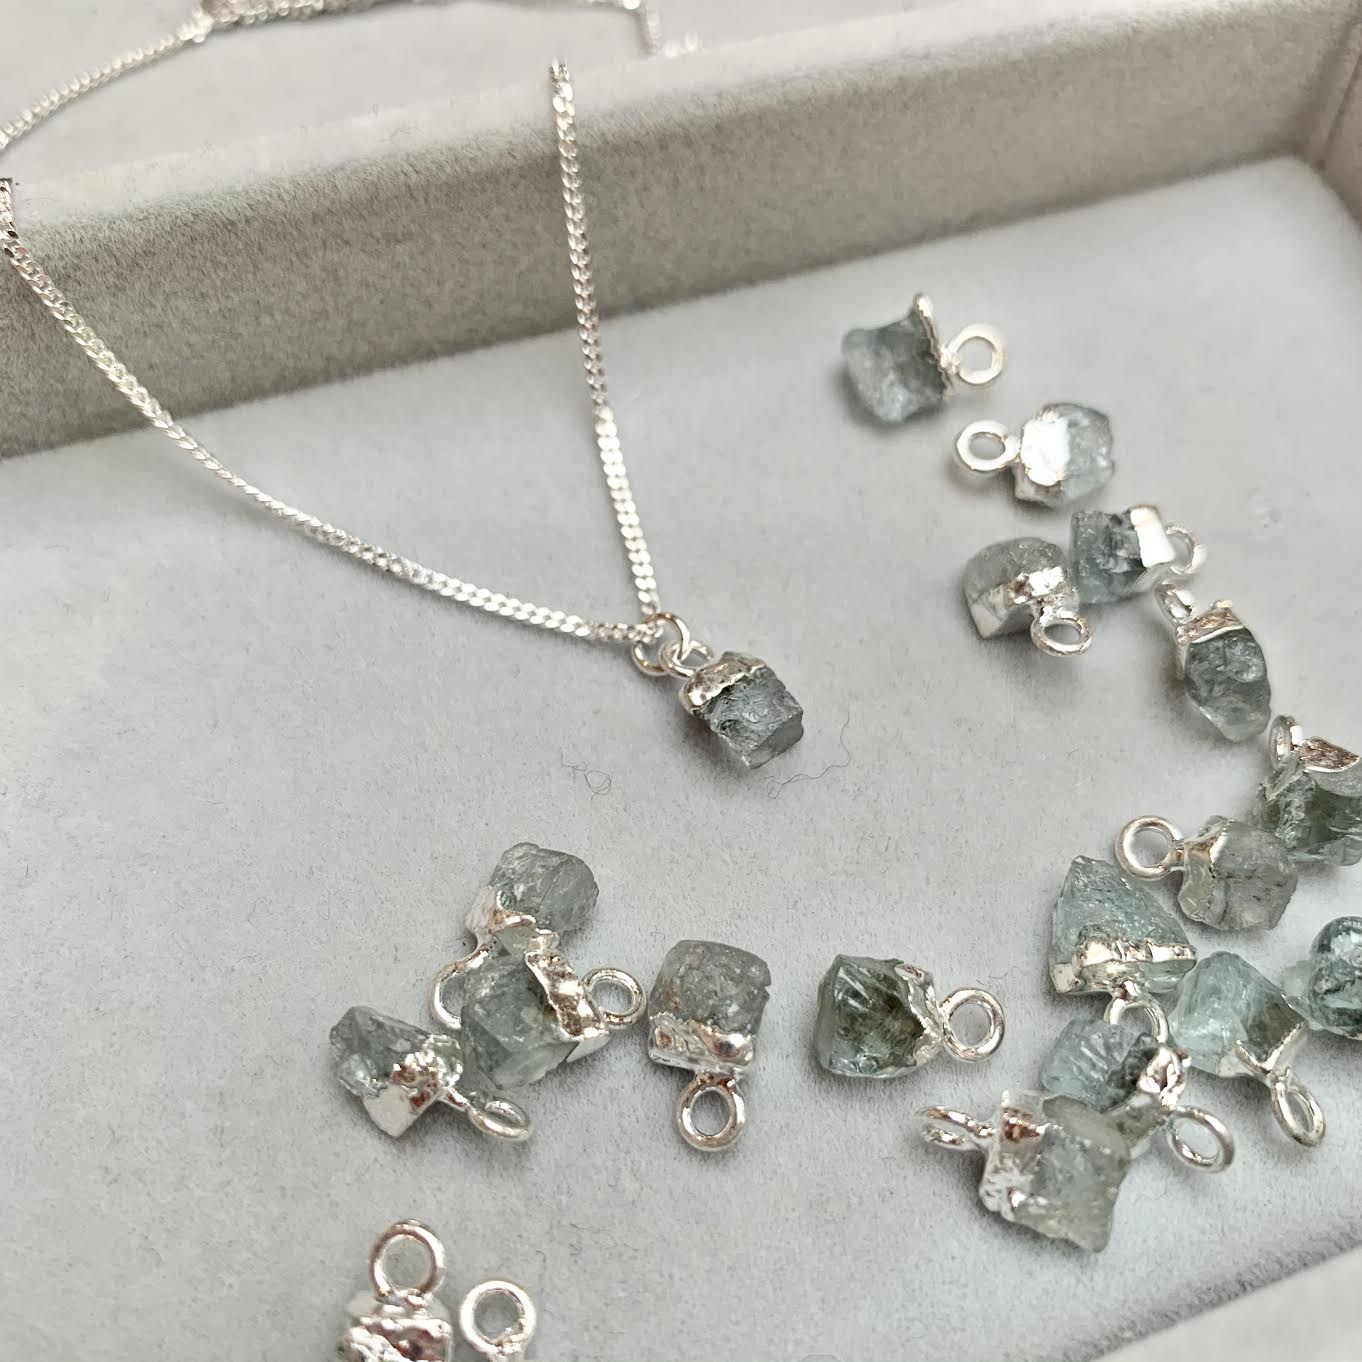 Birthstone Necklace - Silver - MARCH, Aquamarine - Decadorn